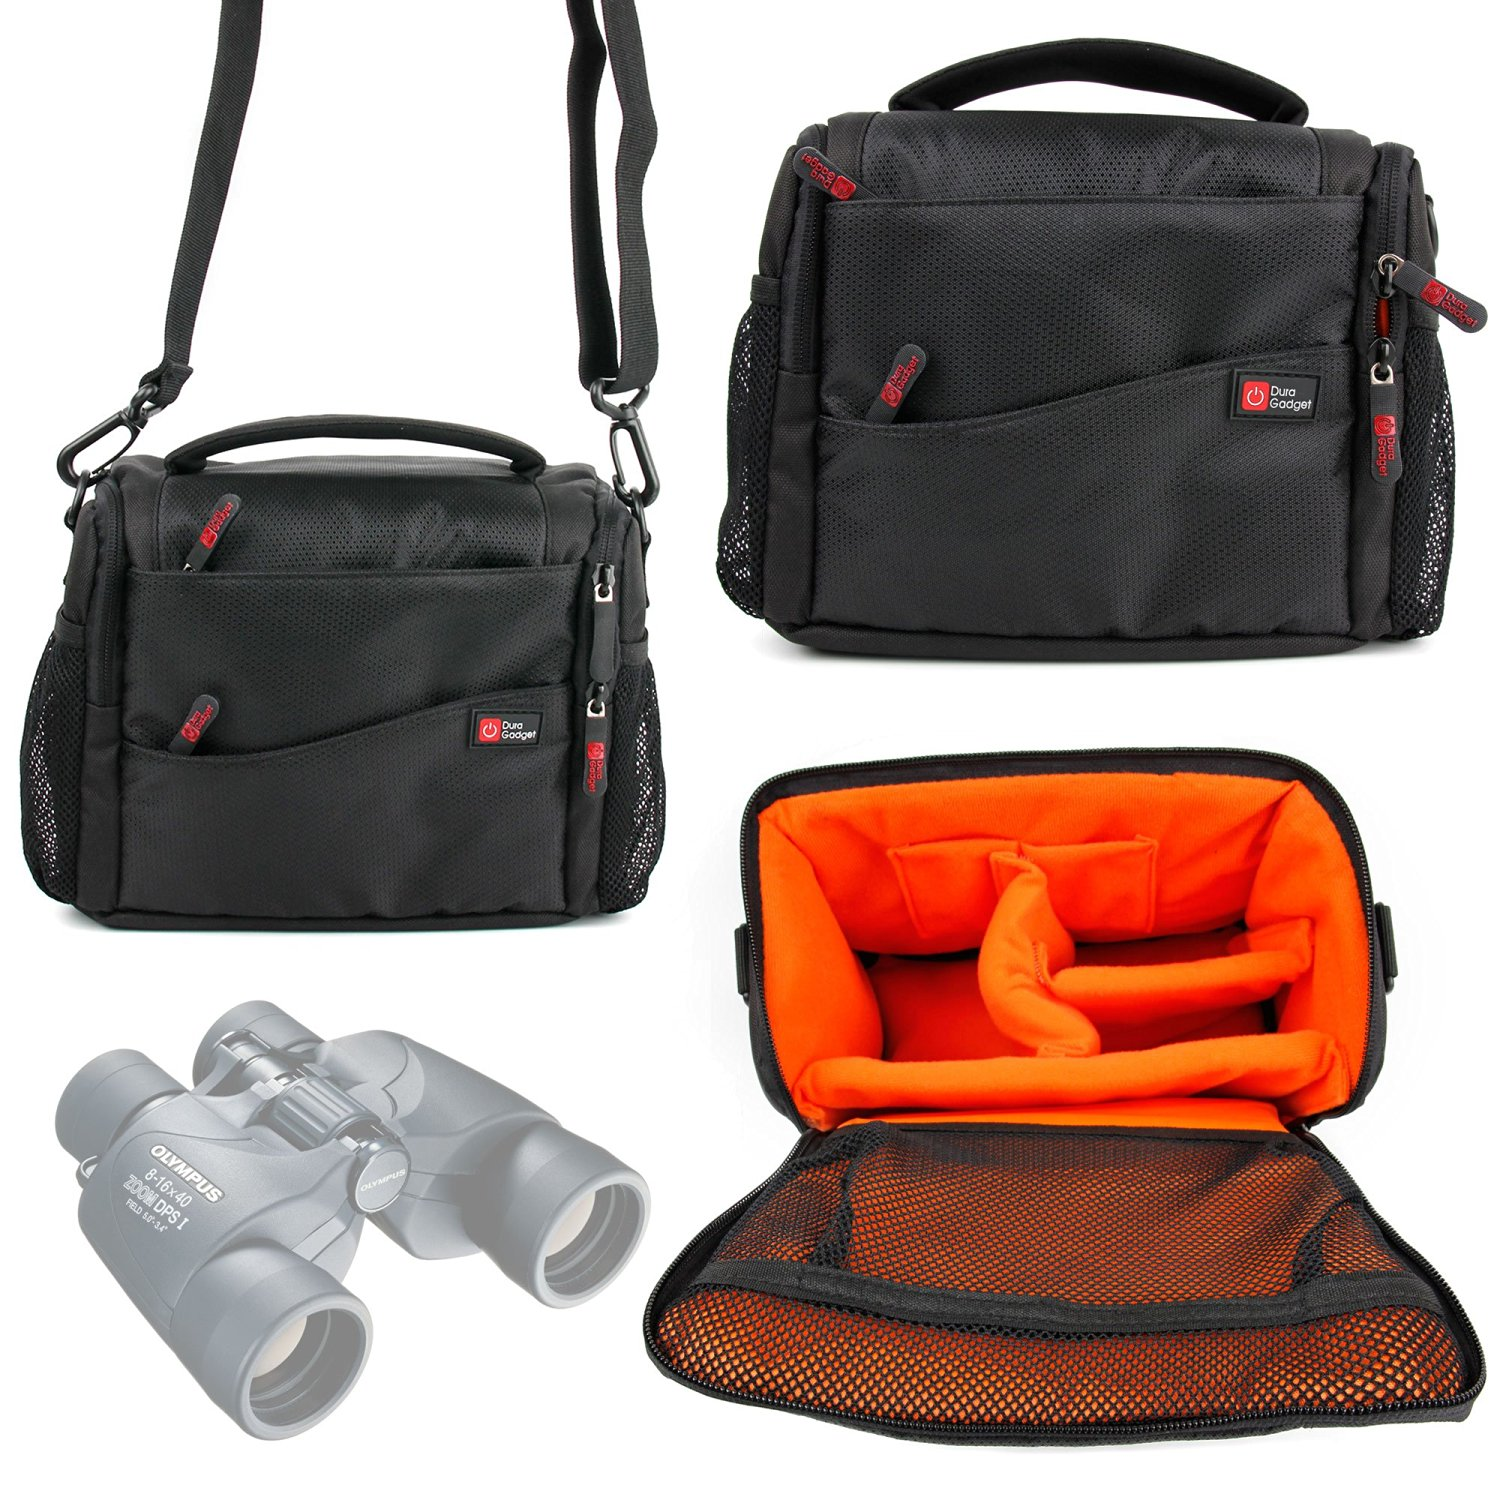 Padded Double-zip Holdal Case W/ Strap For Use W/ N1240586 8-16x40 Binoculars Cameras & Photo Binocular Cases & Accessories